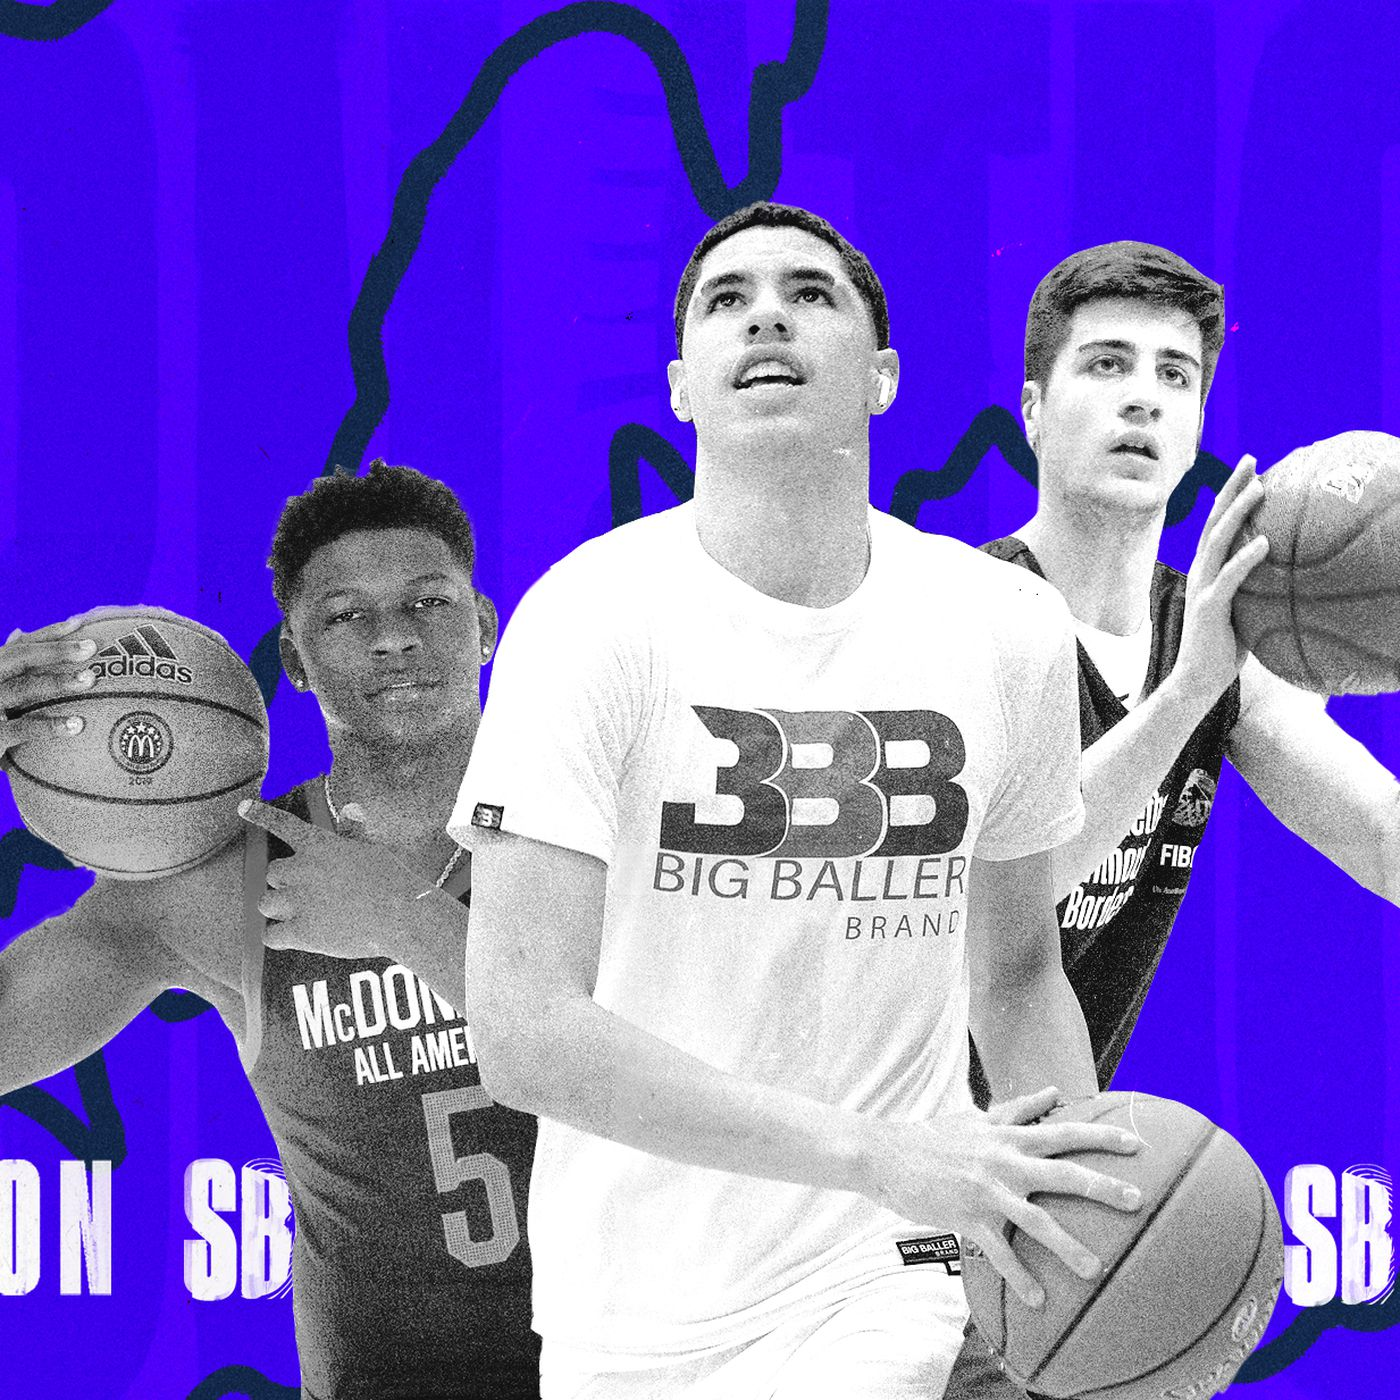 Who Is The Best 3 Point Shooter In The Nba 2020 NBA mock draft 2020: LaMelo Ball is in a wide open race to go No